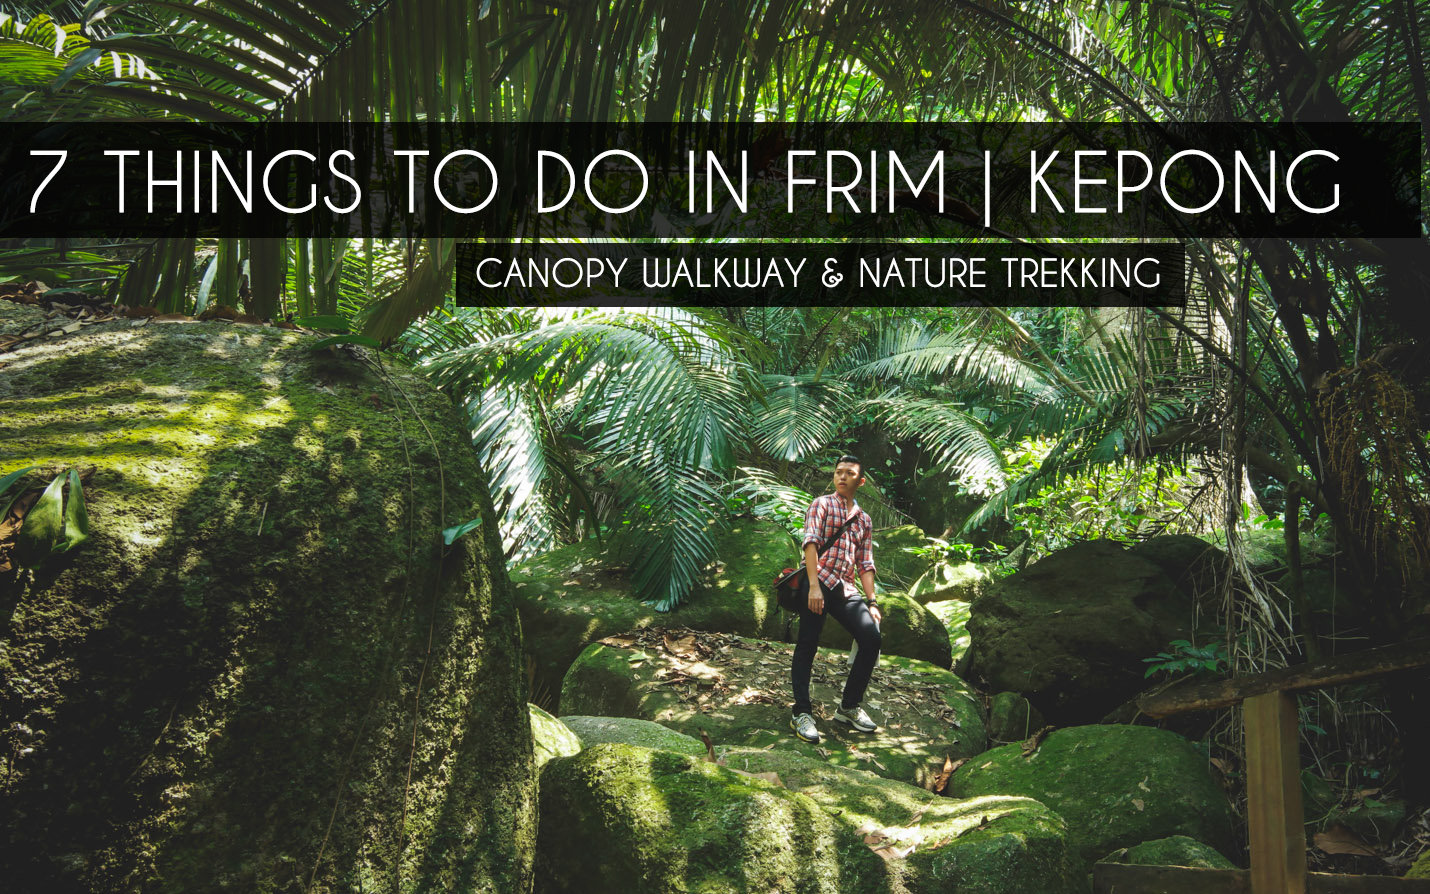 7 Things To Do In Frim Kepong Canopy Walkway Jogging Nature Trekking Capture Precious Moments